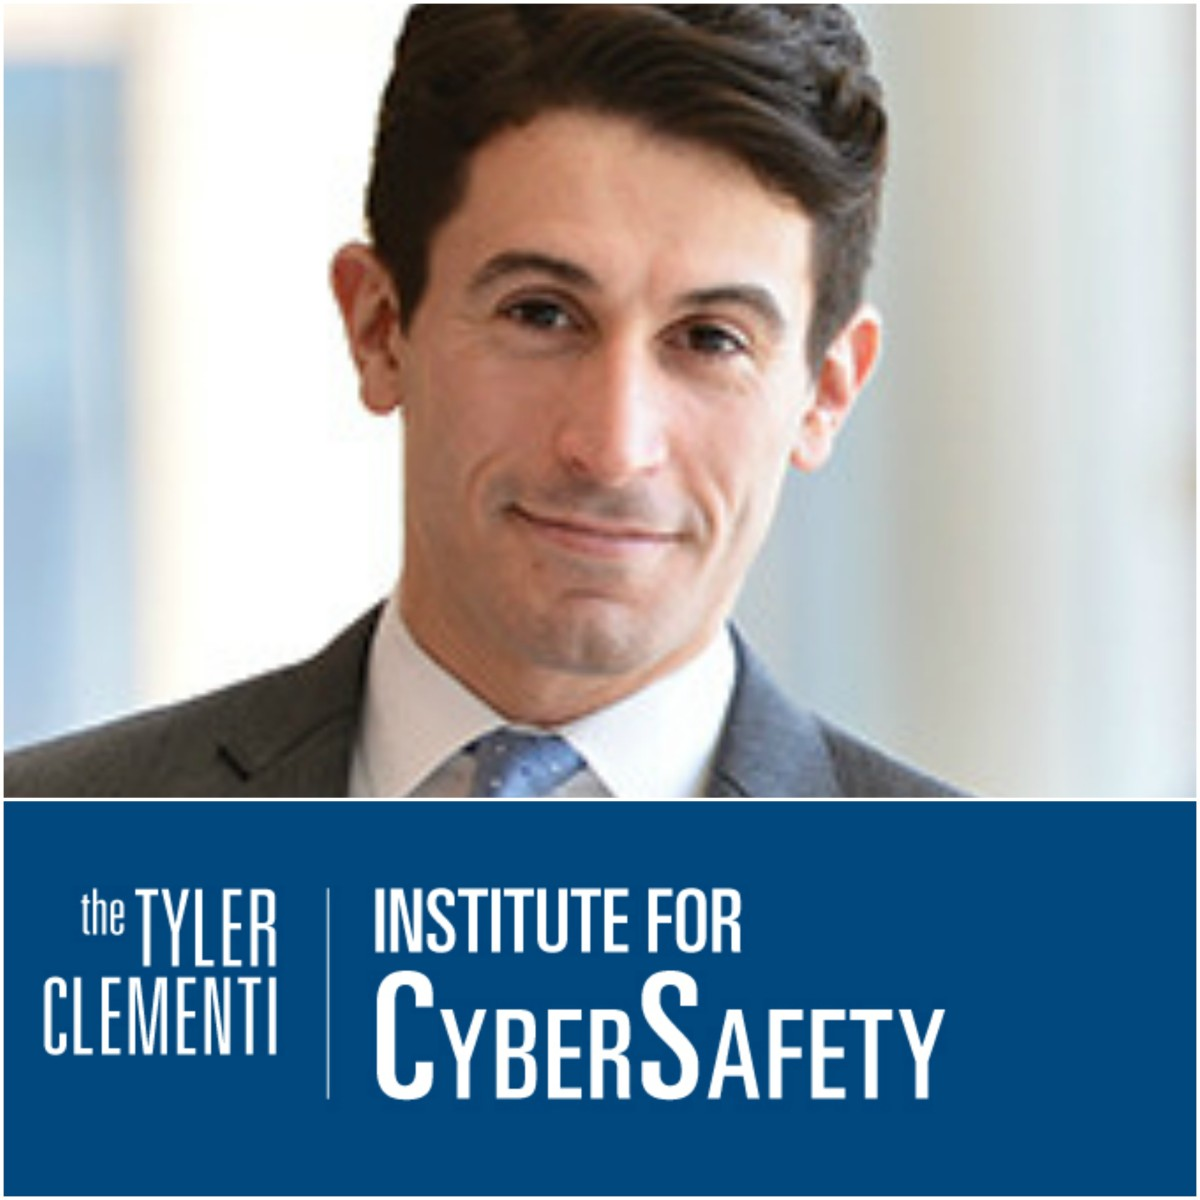 CLBR #224: Tyler Clementi Institute for Cyber Safety's Ari Ezra Waldman